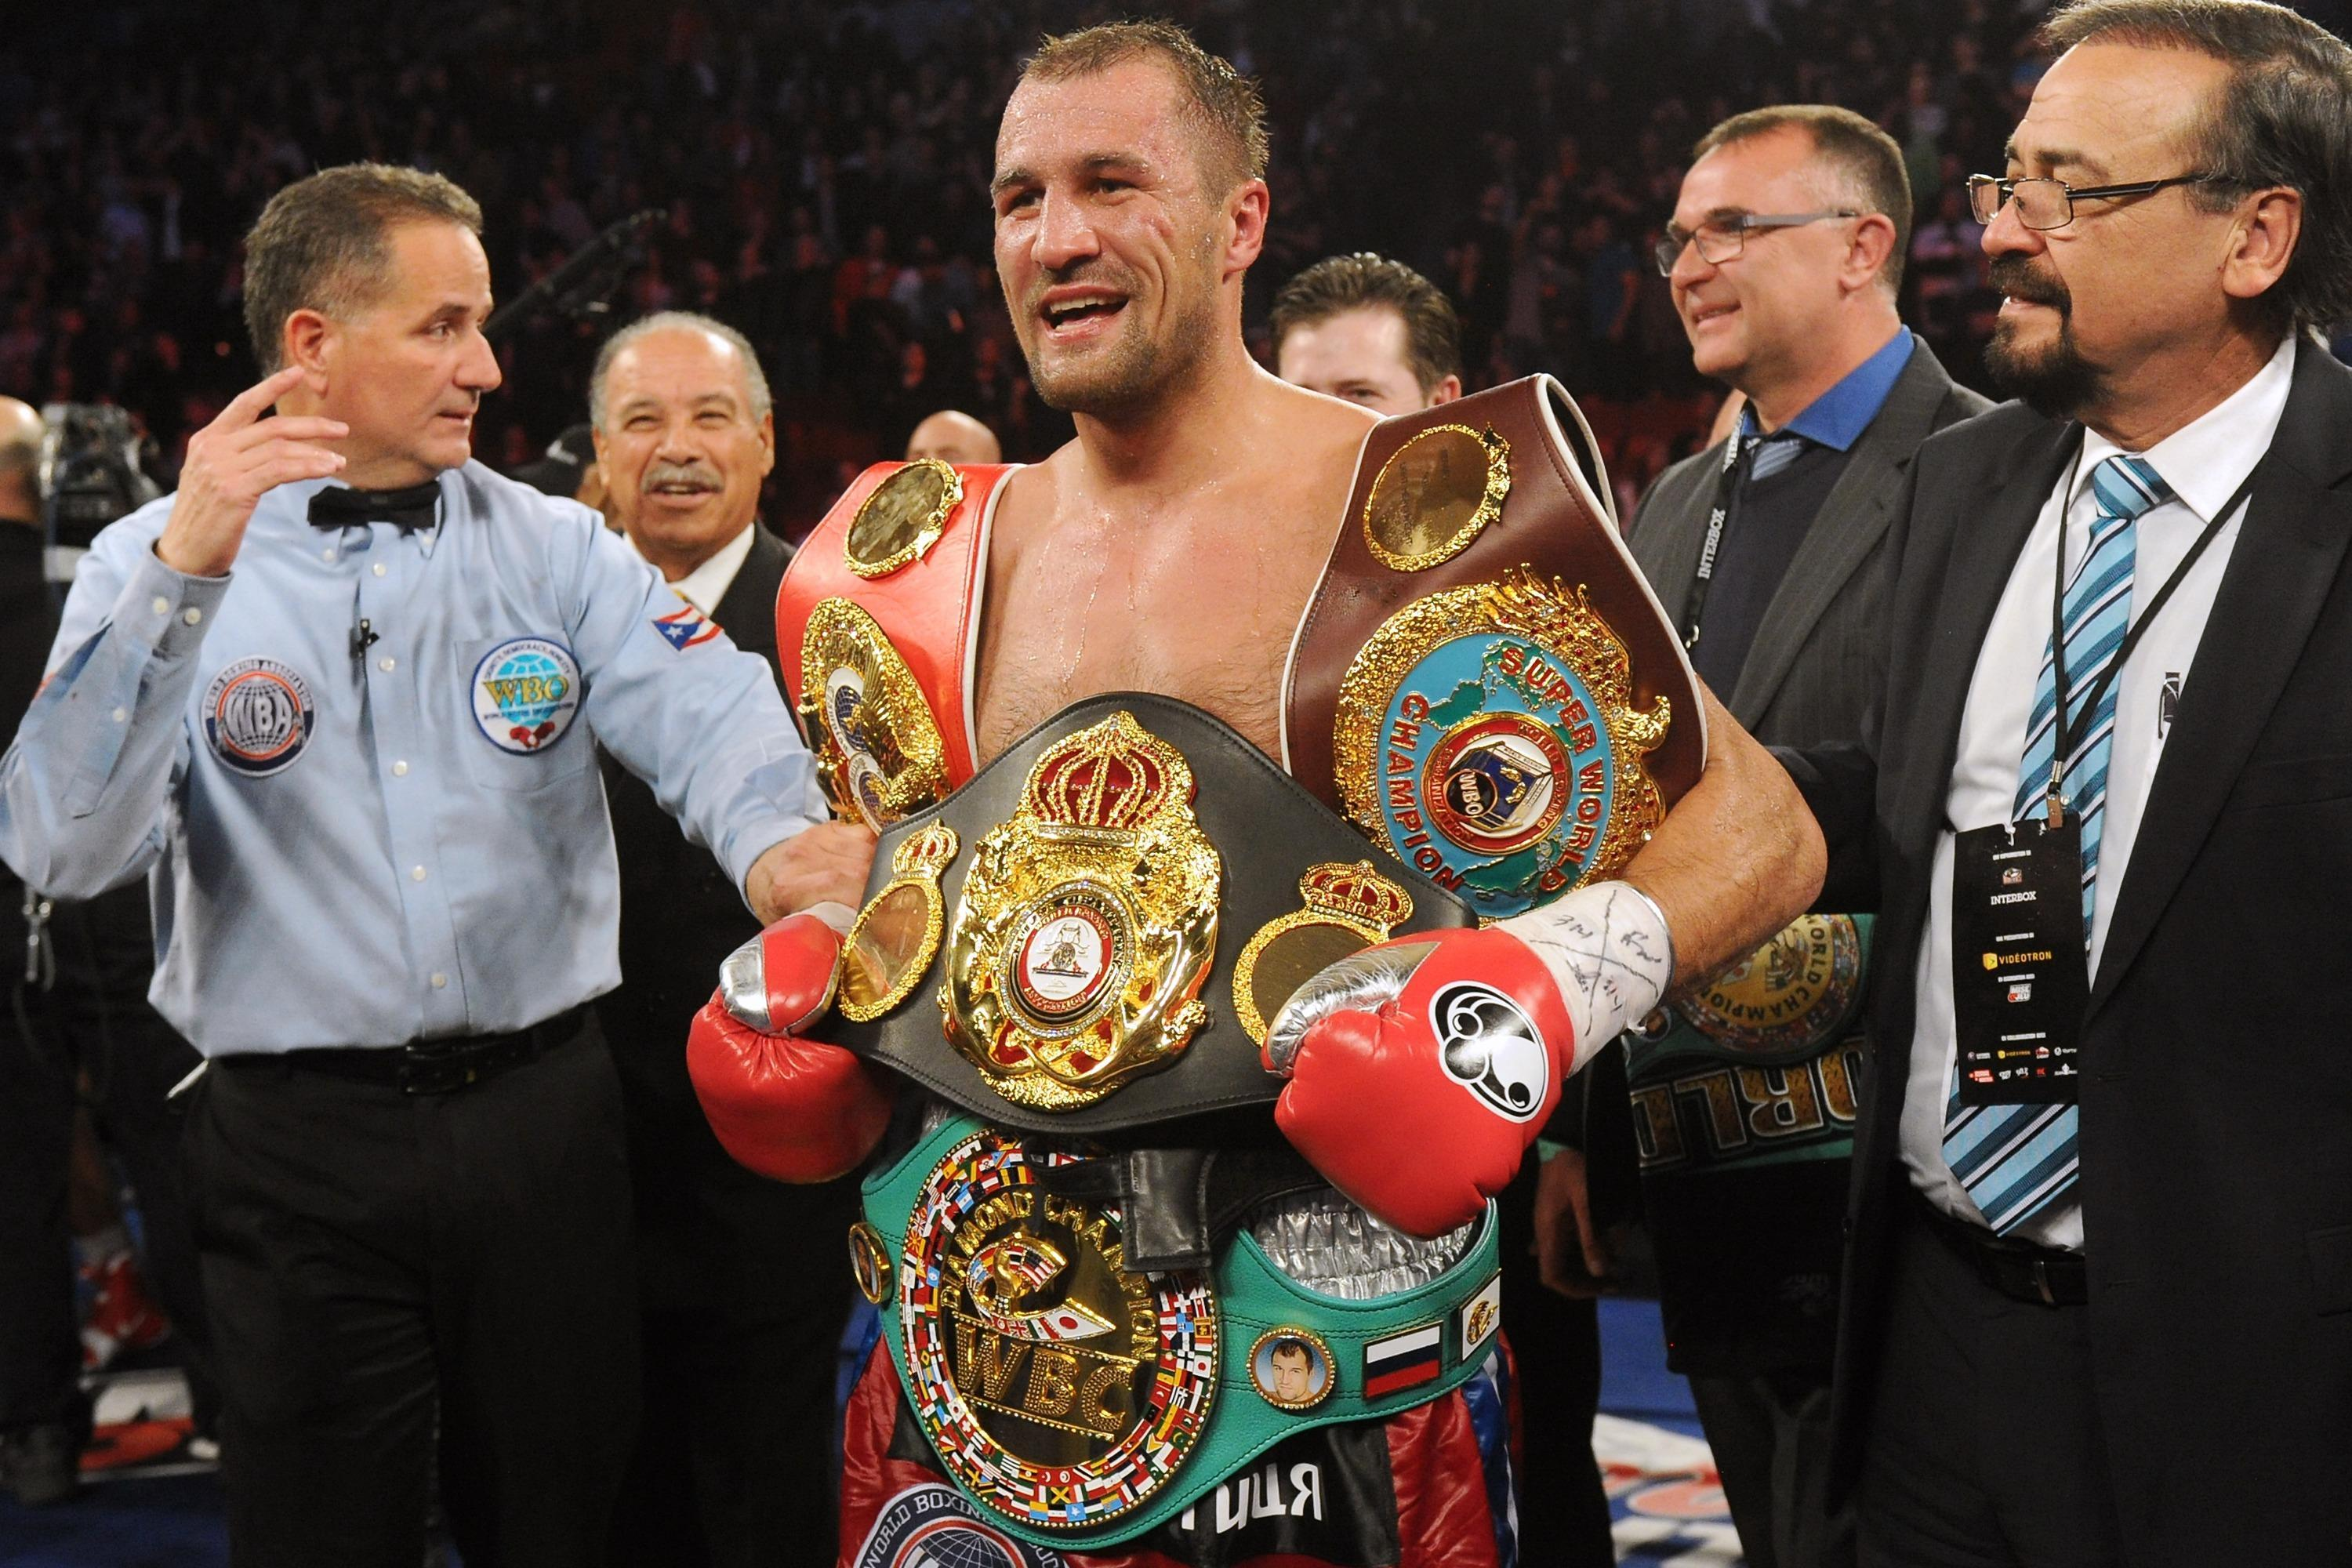 Sergey Kovalev previously unified the titles, but now holds the WBO belt alone